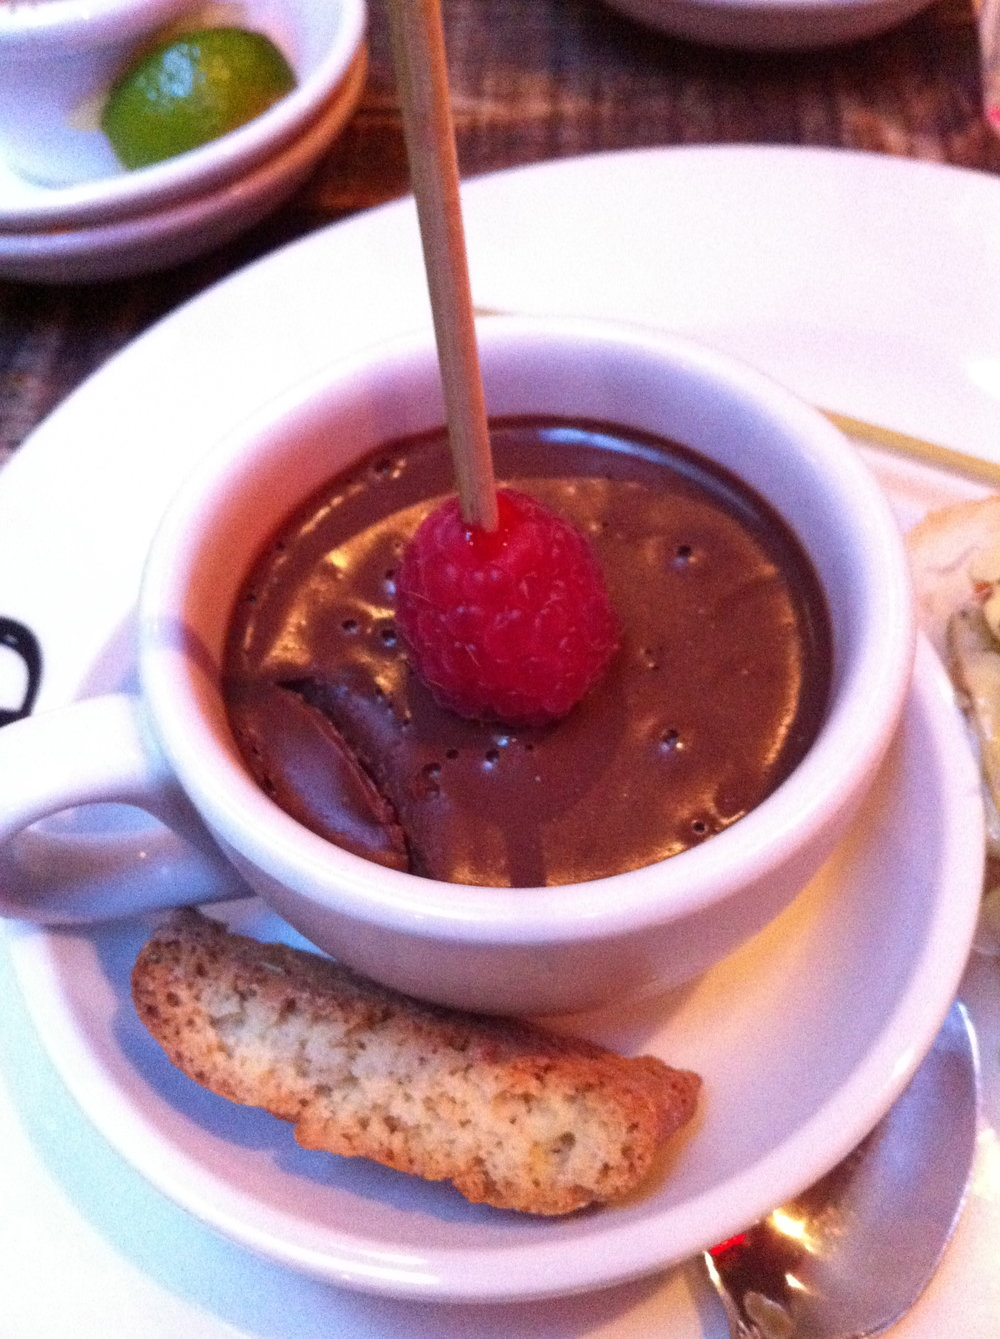 Chocolate mousse at Pix Pintxos Covent Garden